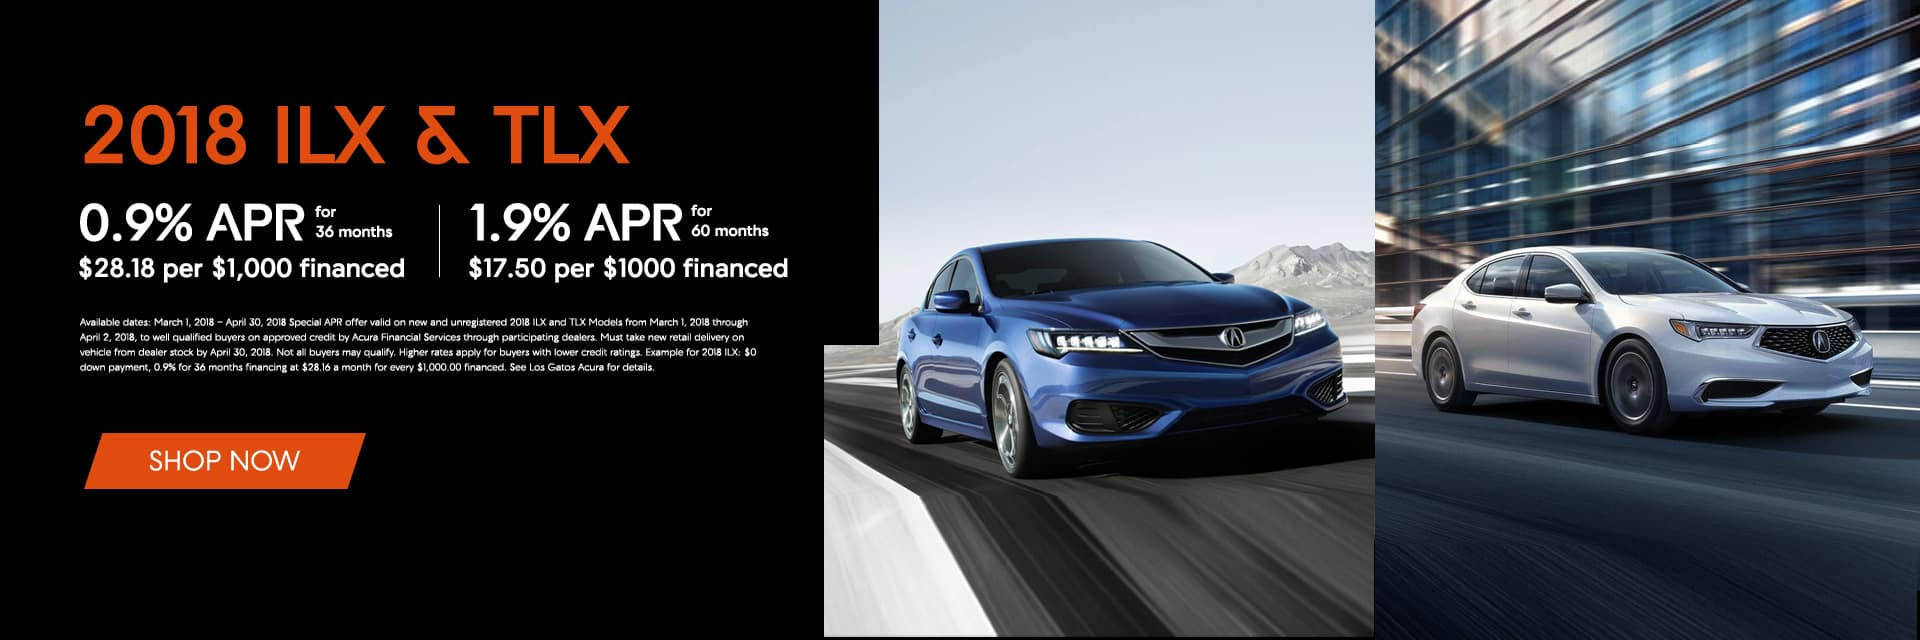 2018 Acura ILX and TLX Offers Banner